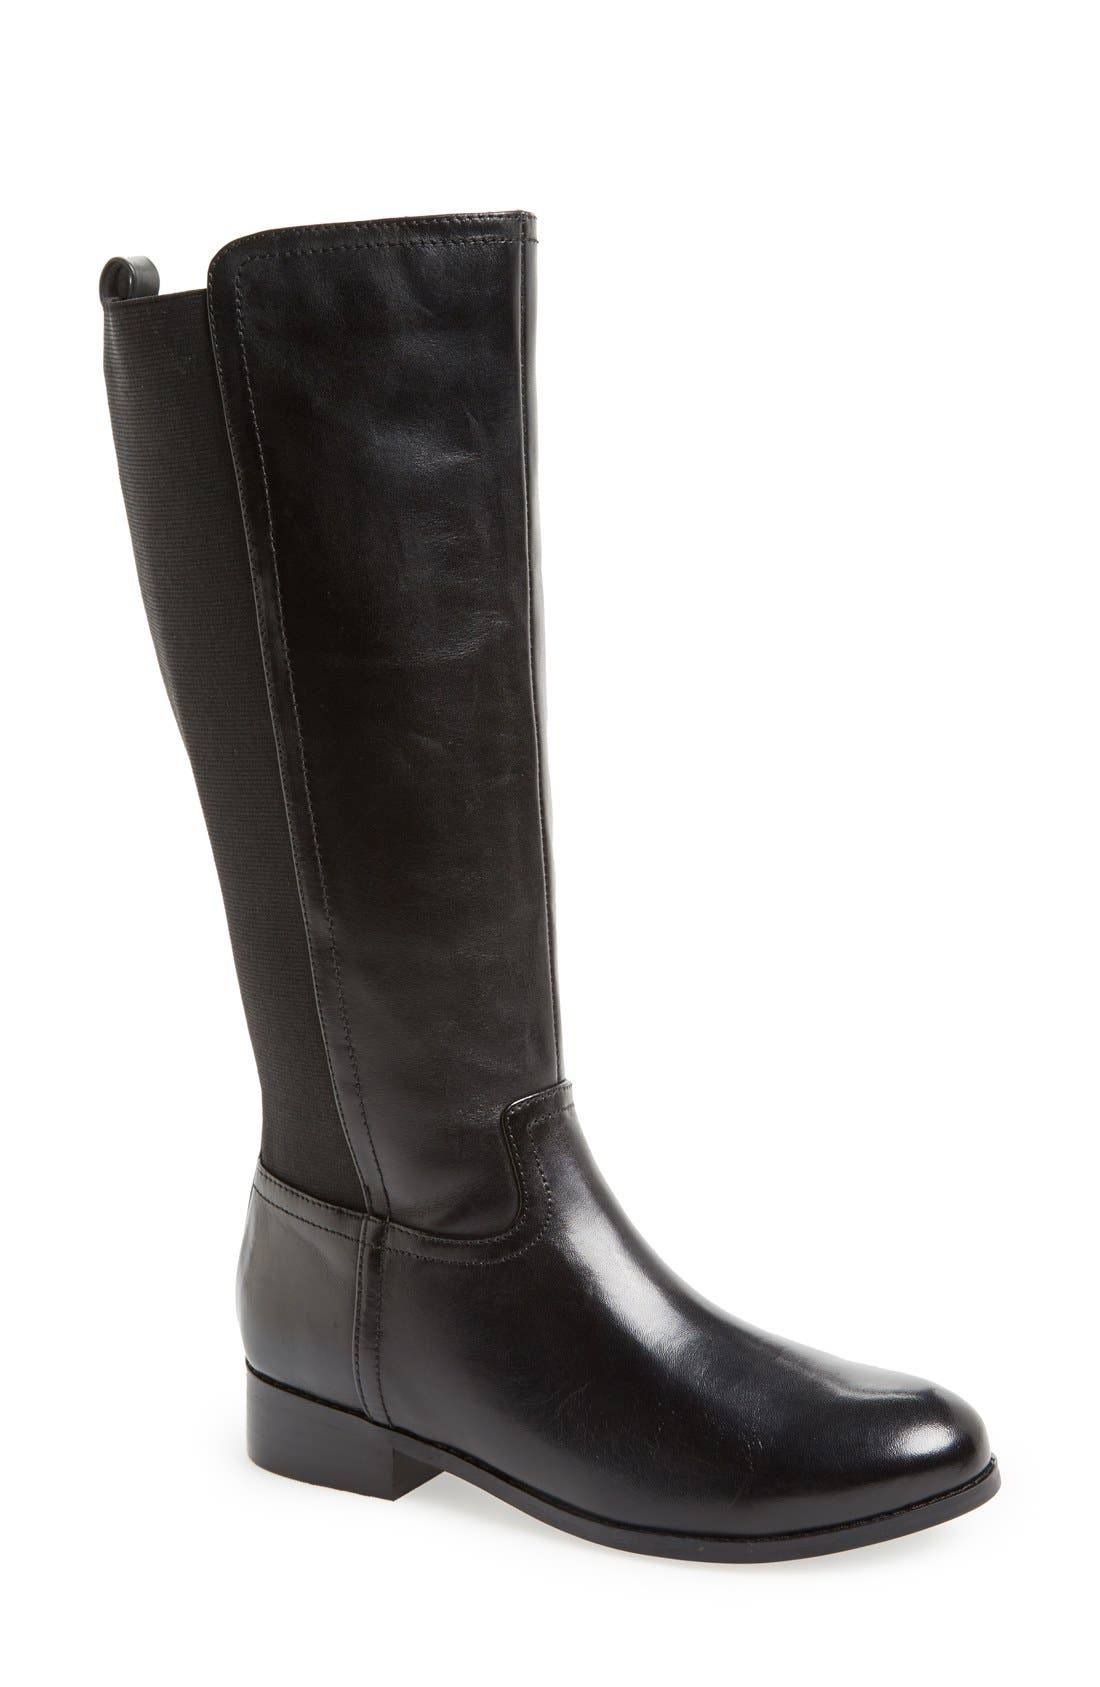 Alternate Image 1 Selected - Trotters 'Signature Lucia' Leather Riding Boot (Wide Calf) (Women)